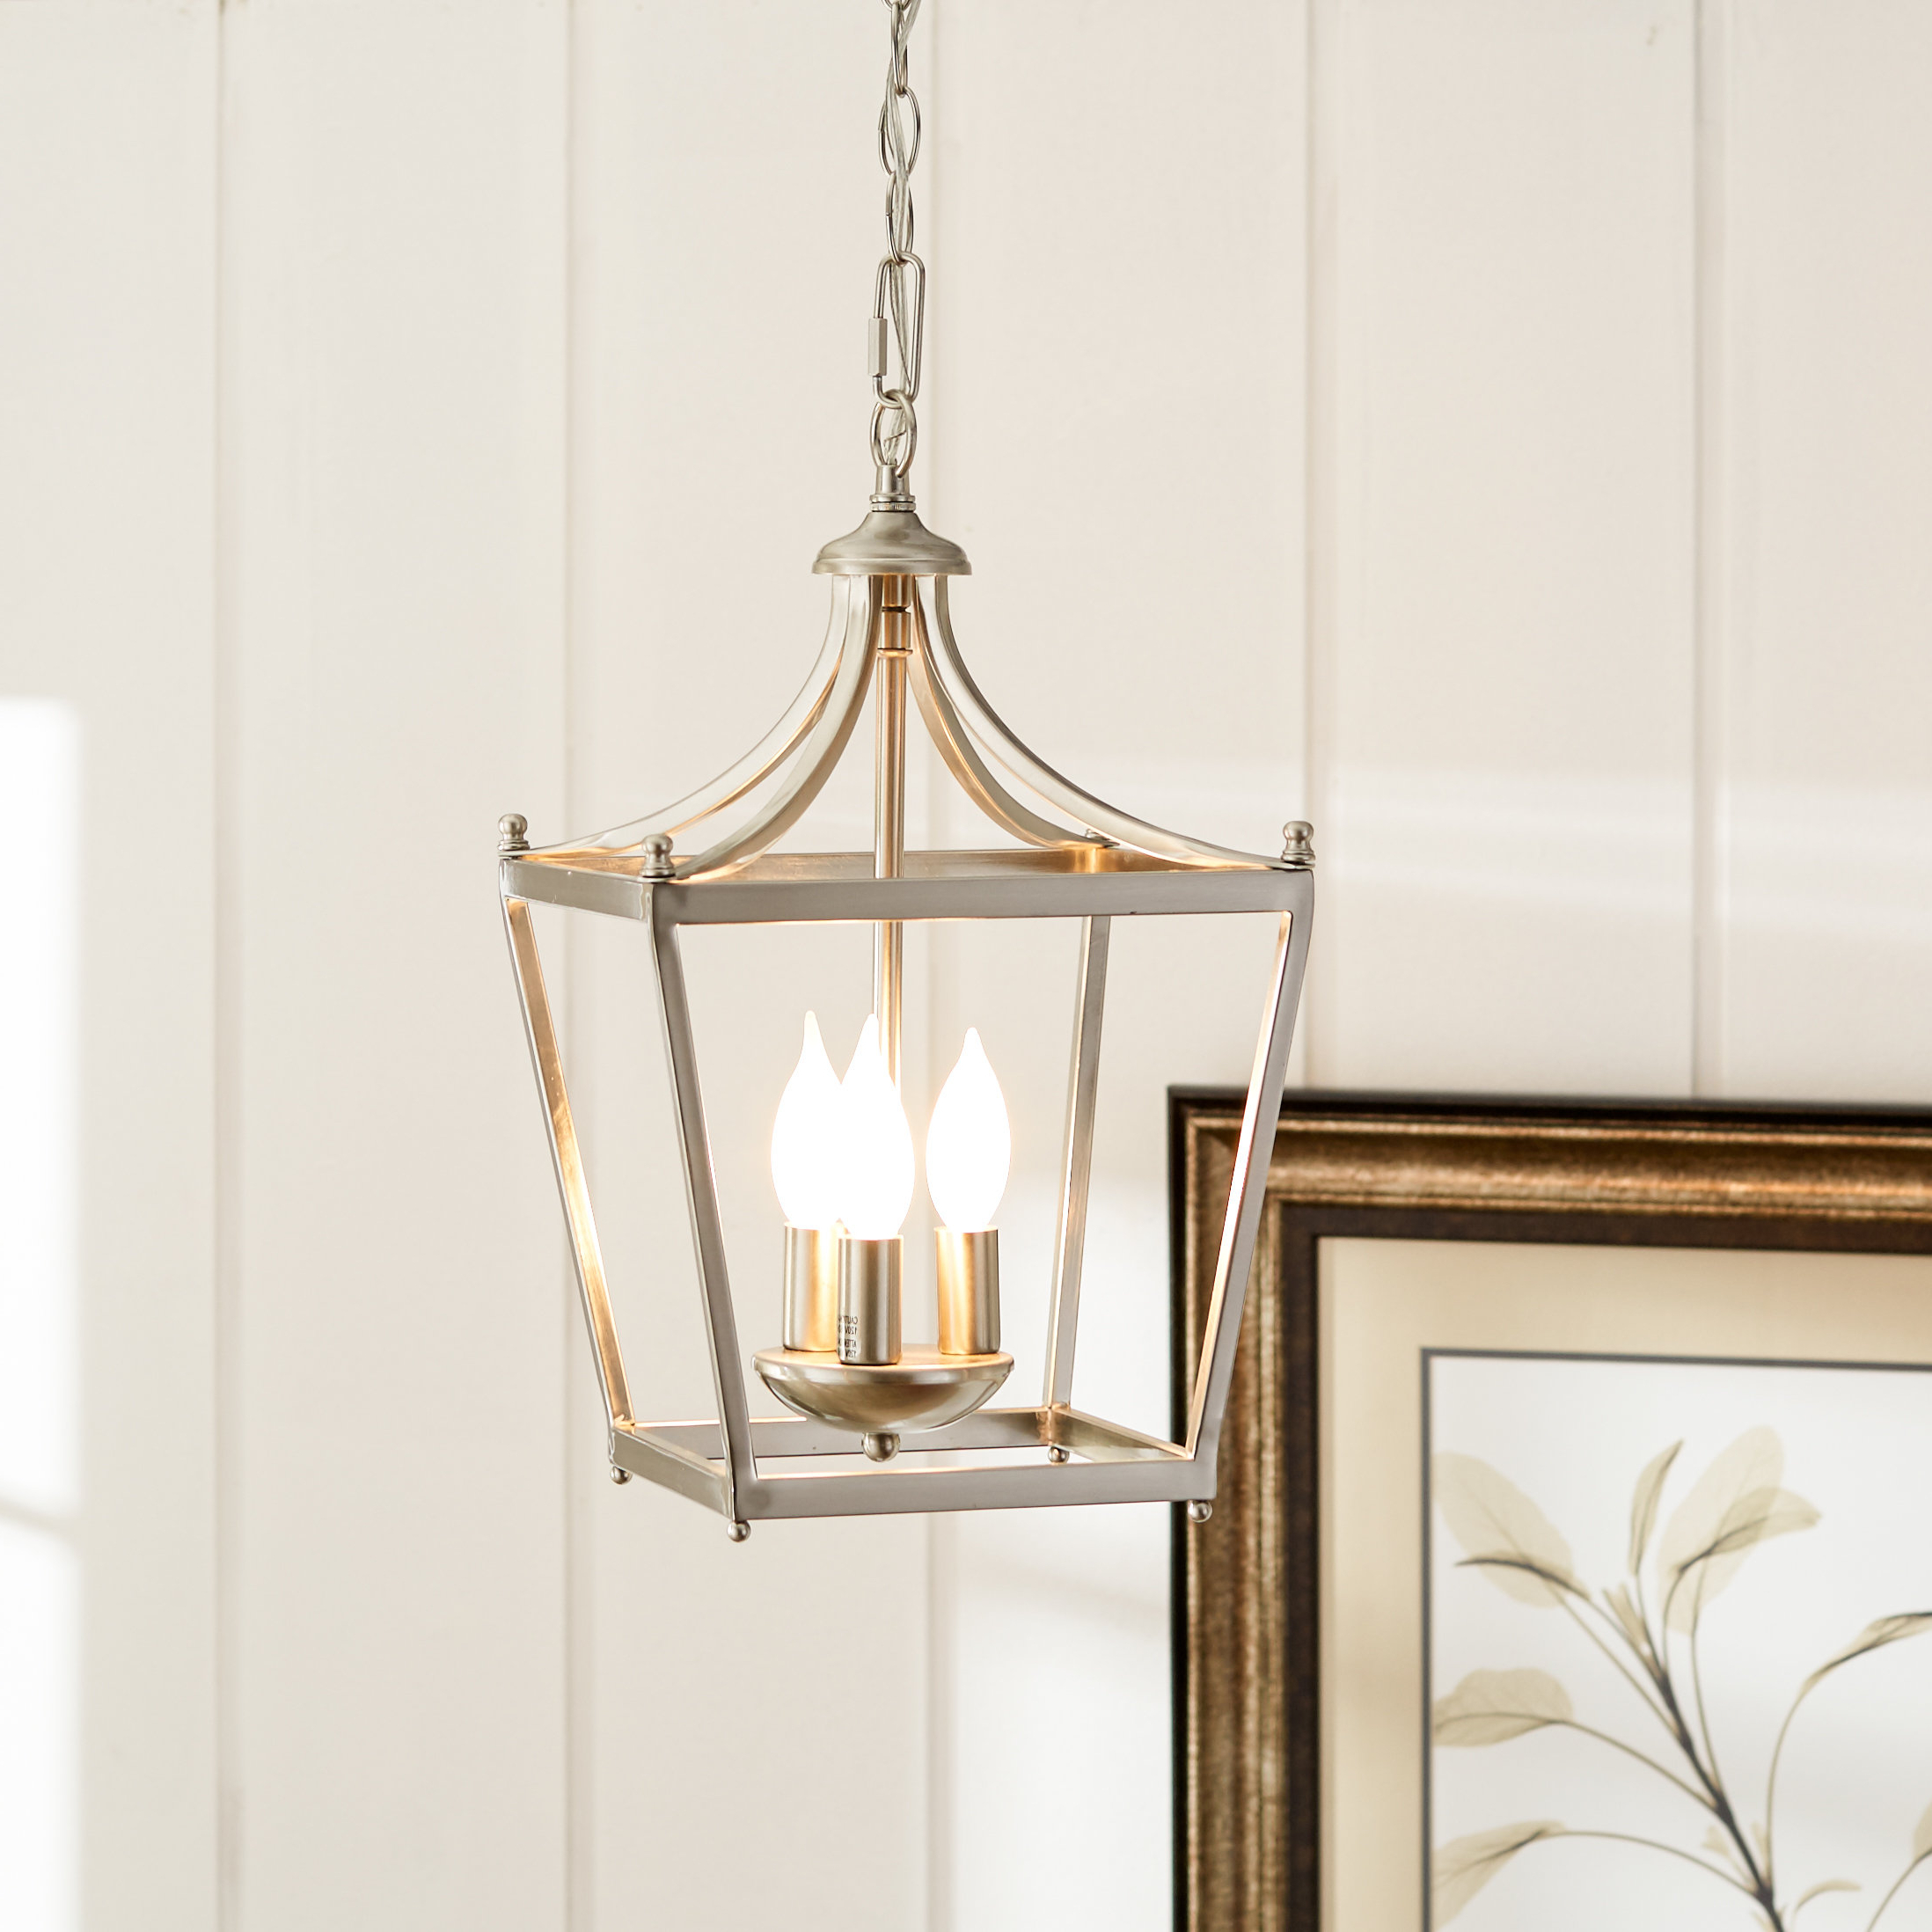 Gabriella 3 Light Lantern Chandeliers With Regard To Popular Birch Lane™ Heritage Gabriella 3 Light Lantern Chandelier (View 12 of 25)